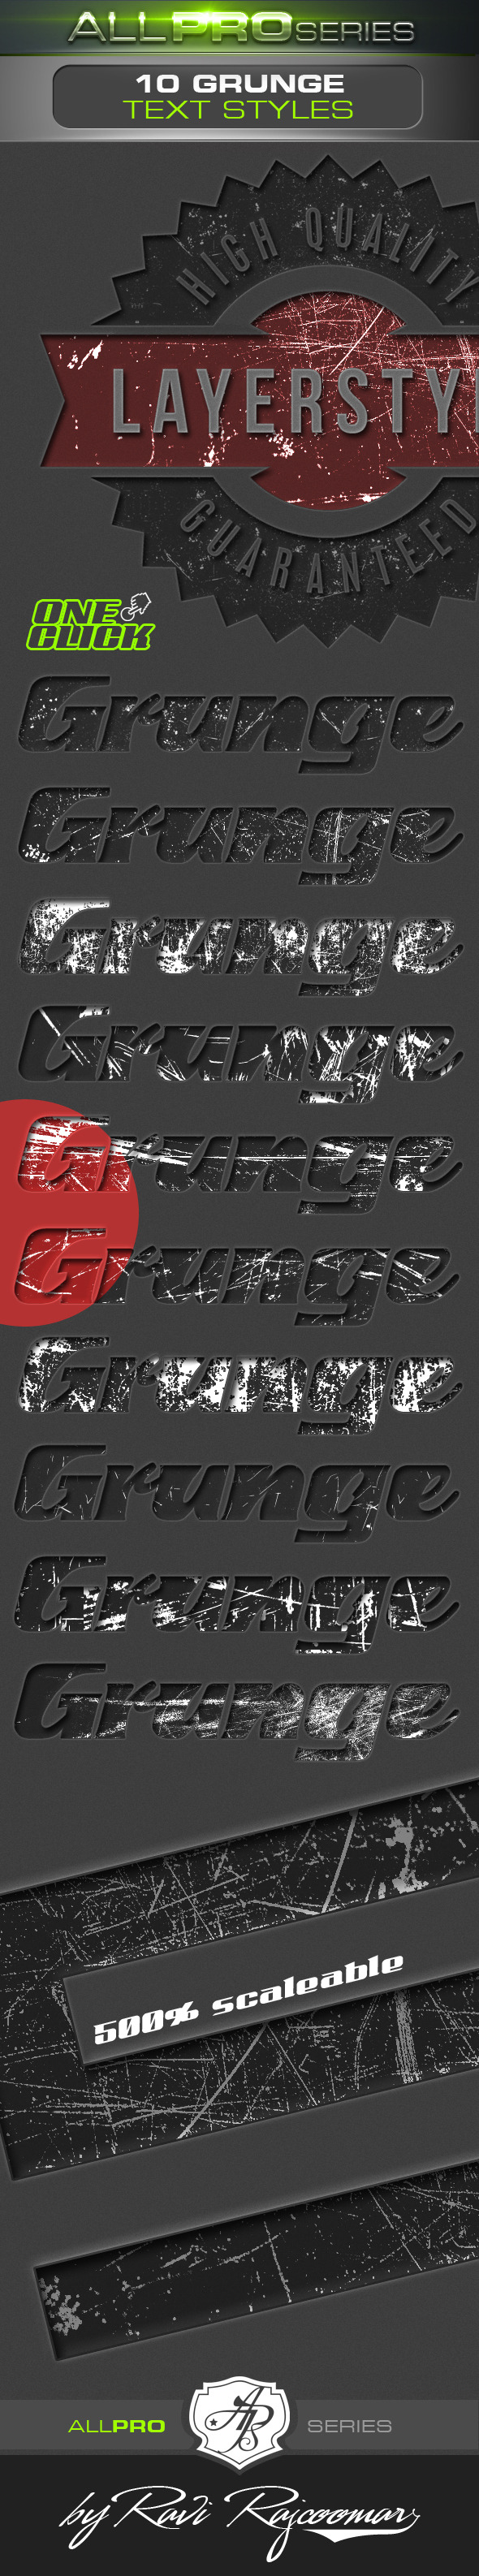 Grunge Photoshop Text Styles - Text Effects Actions